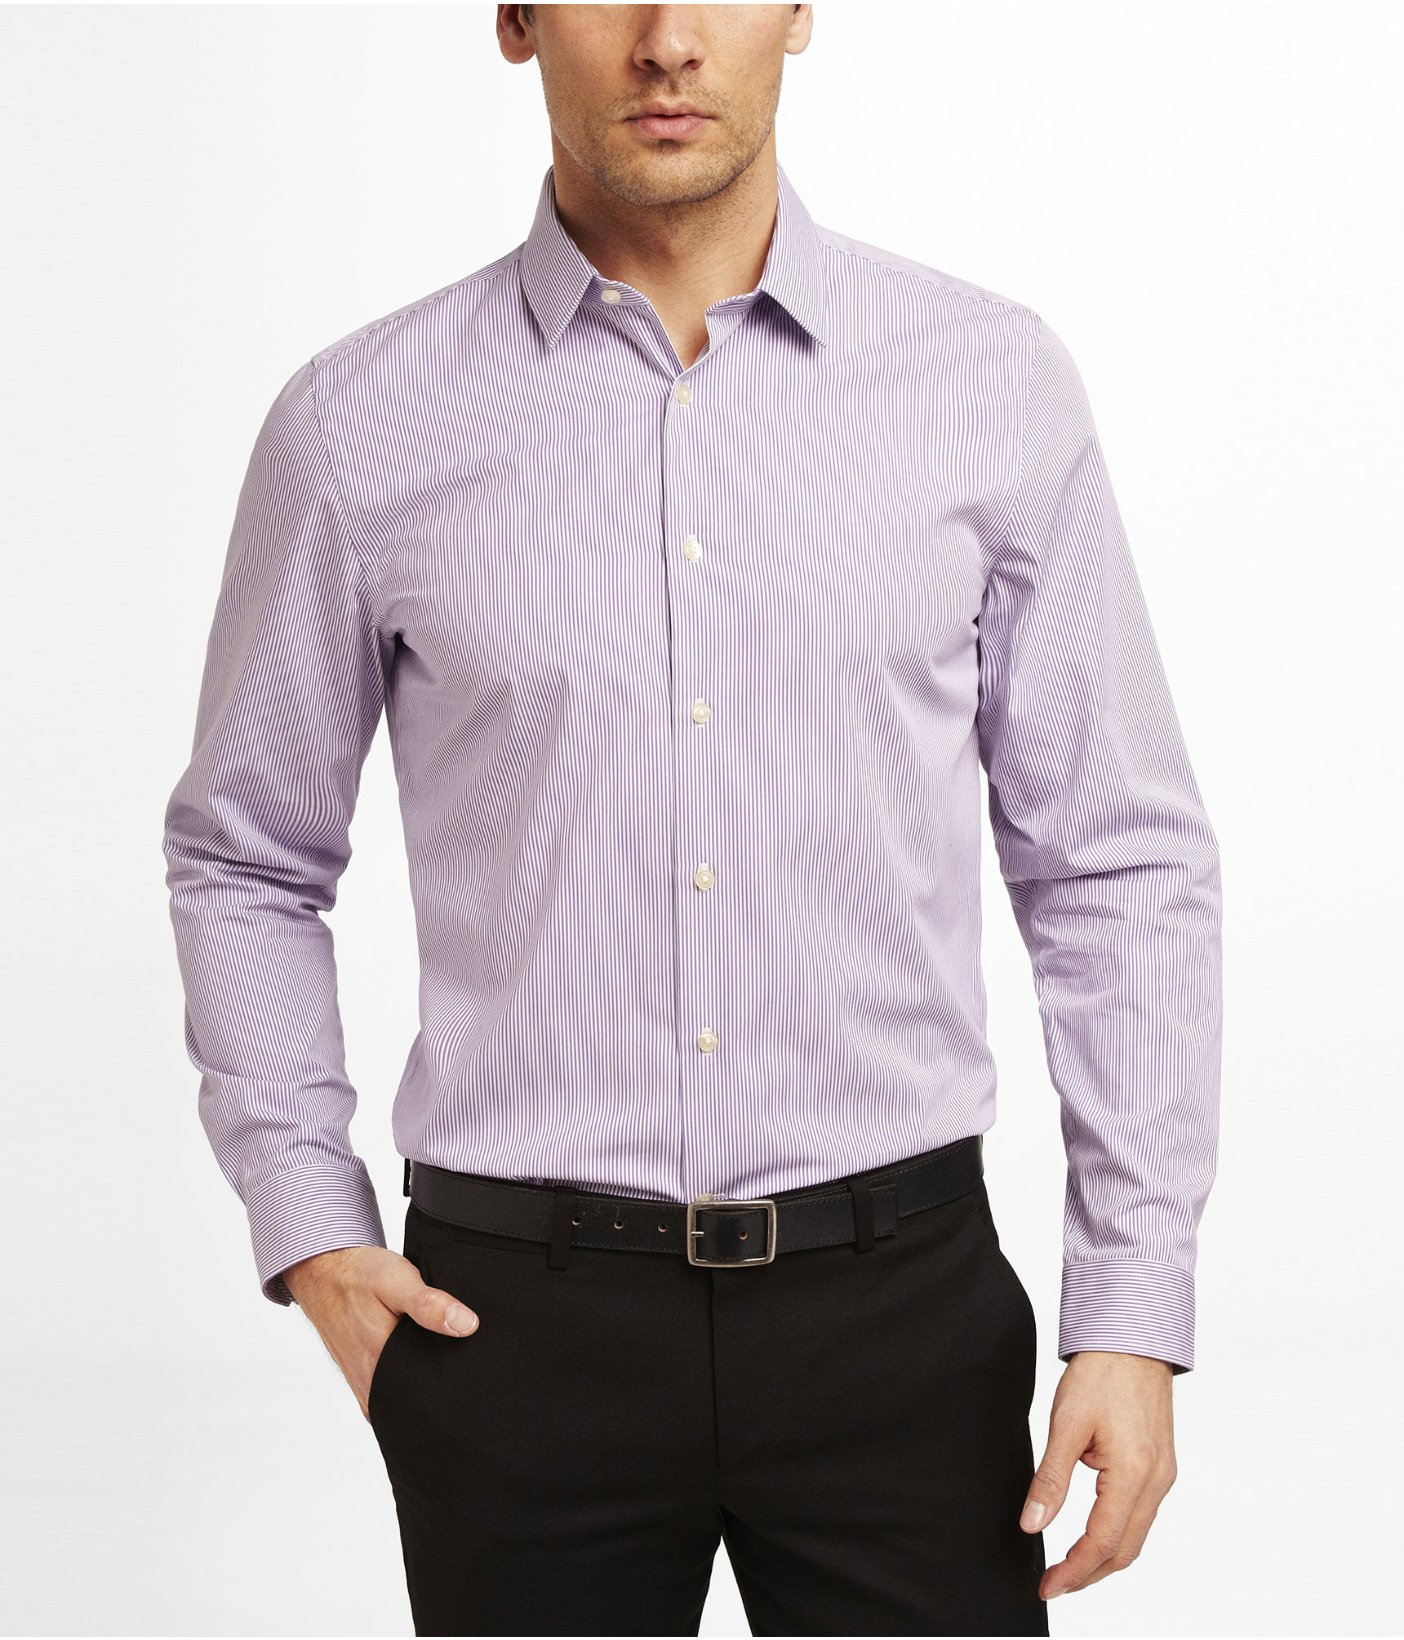 Express modern fit striped dress shirt in purple for men for Purple striped dress shirt